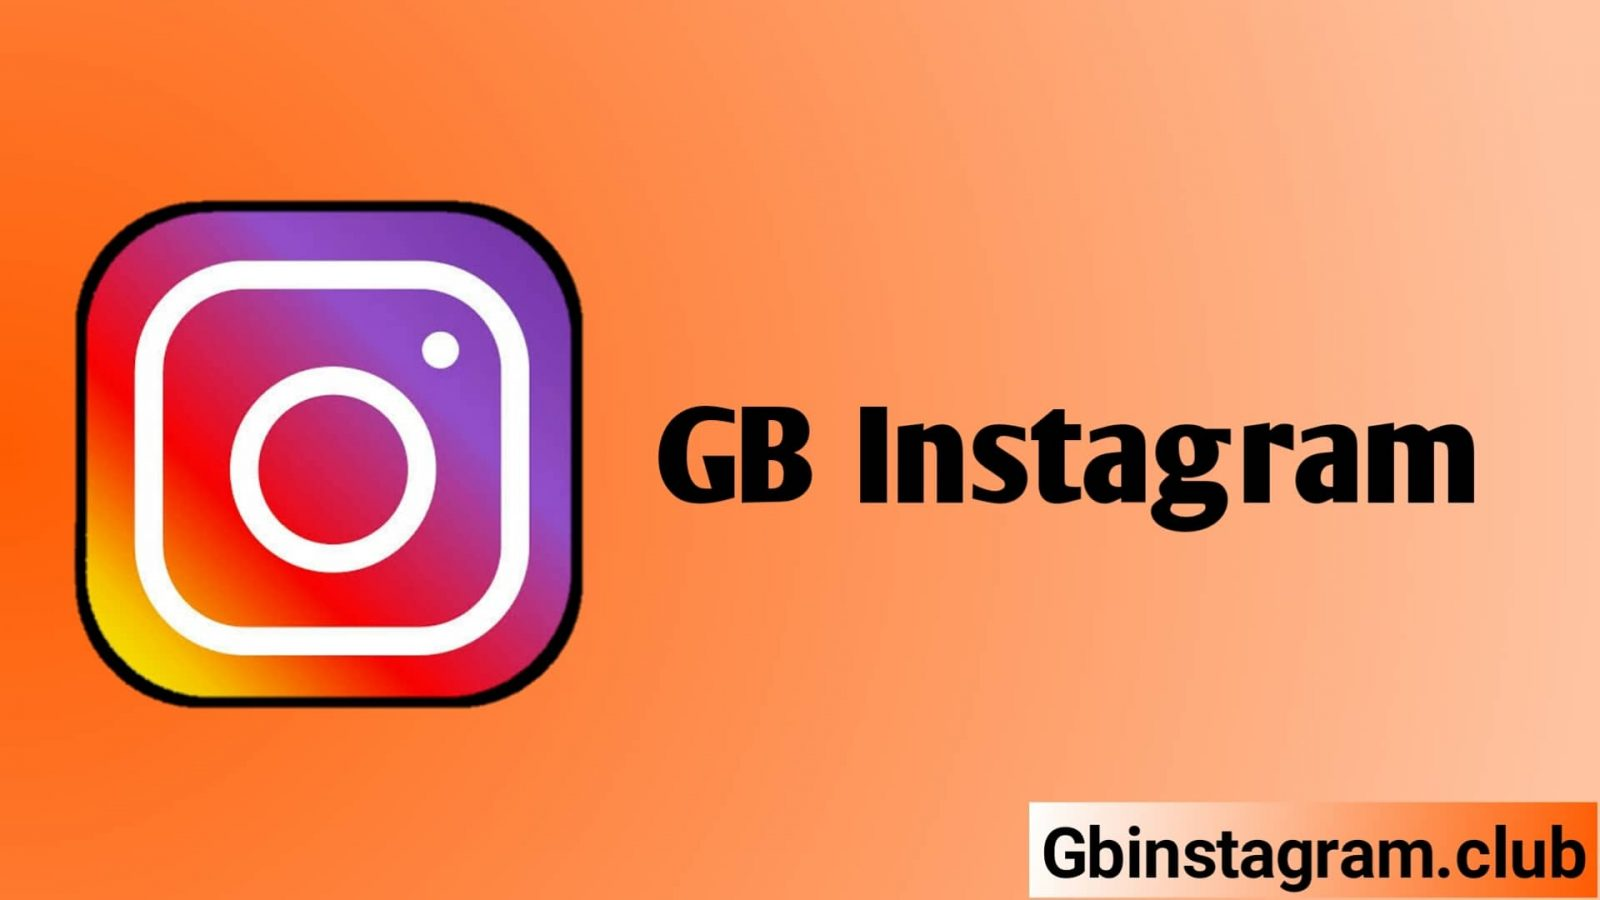 Gb instagram apk image